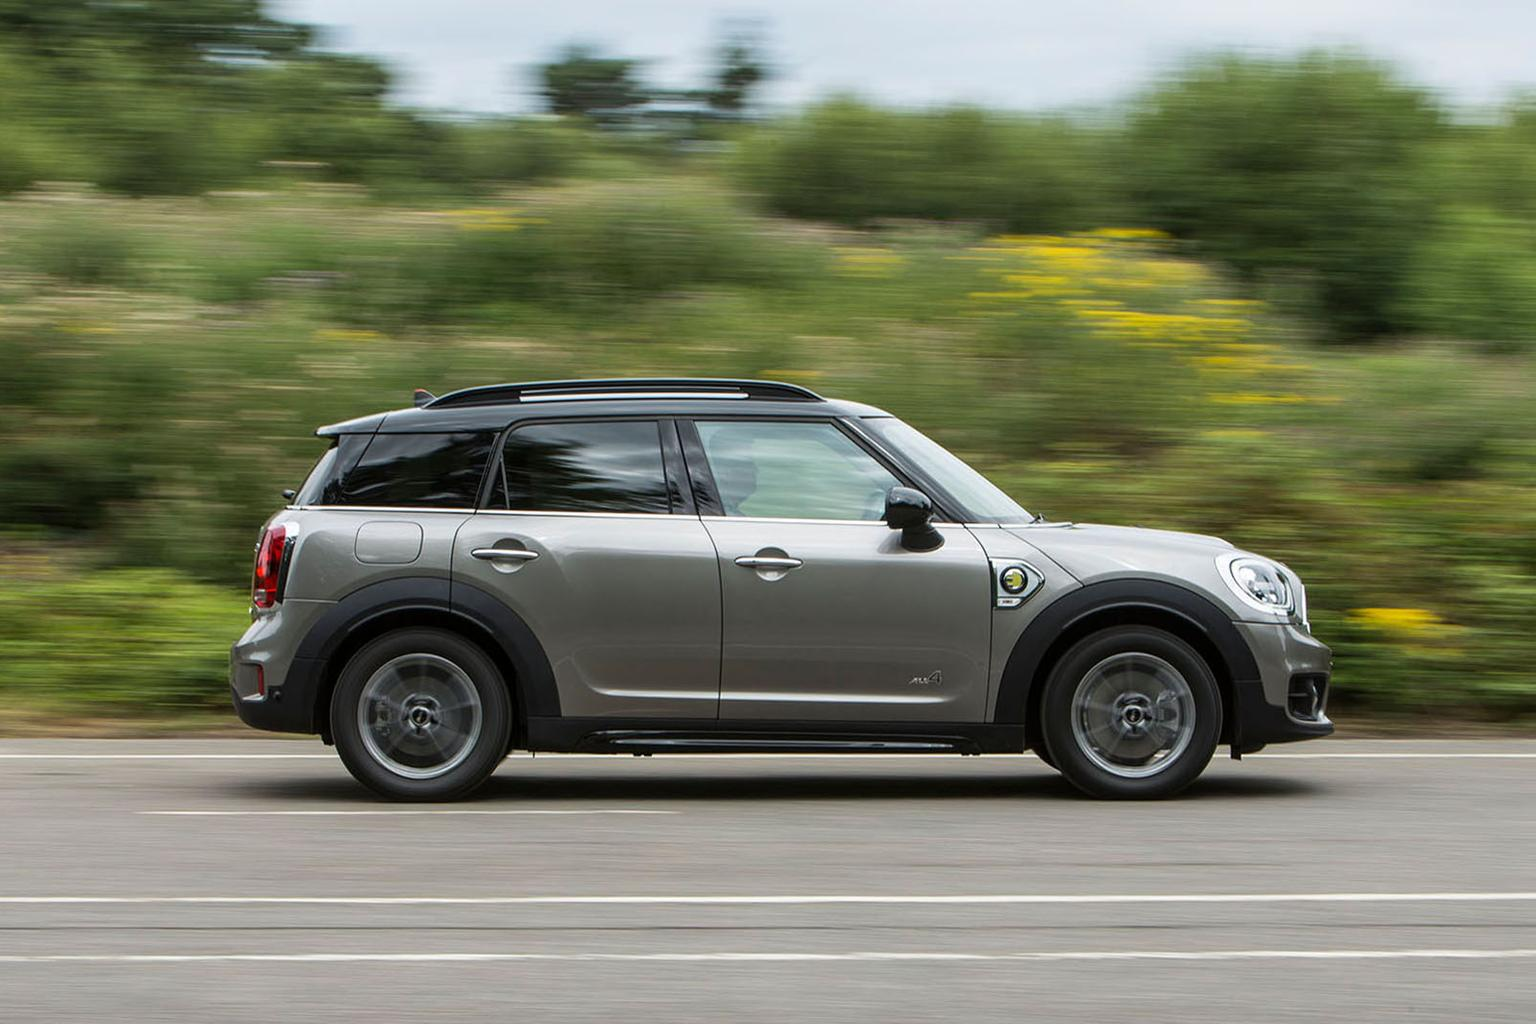 2017 Mini Countryman Cooper S E All4 - price, specs and release date